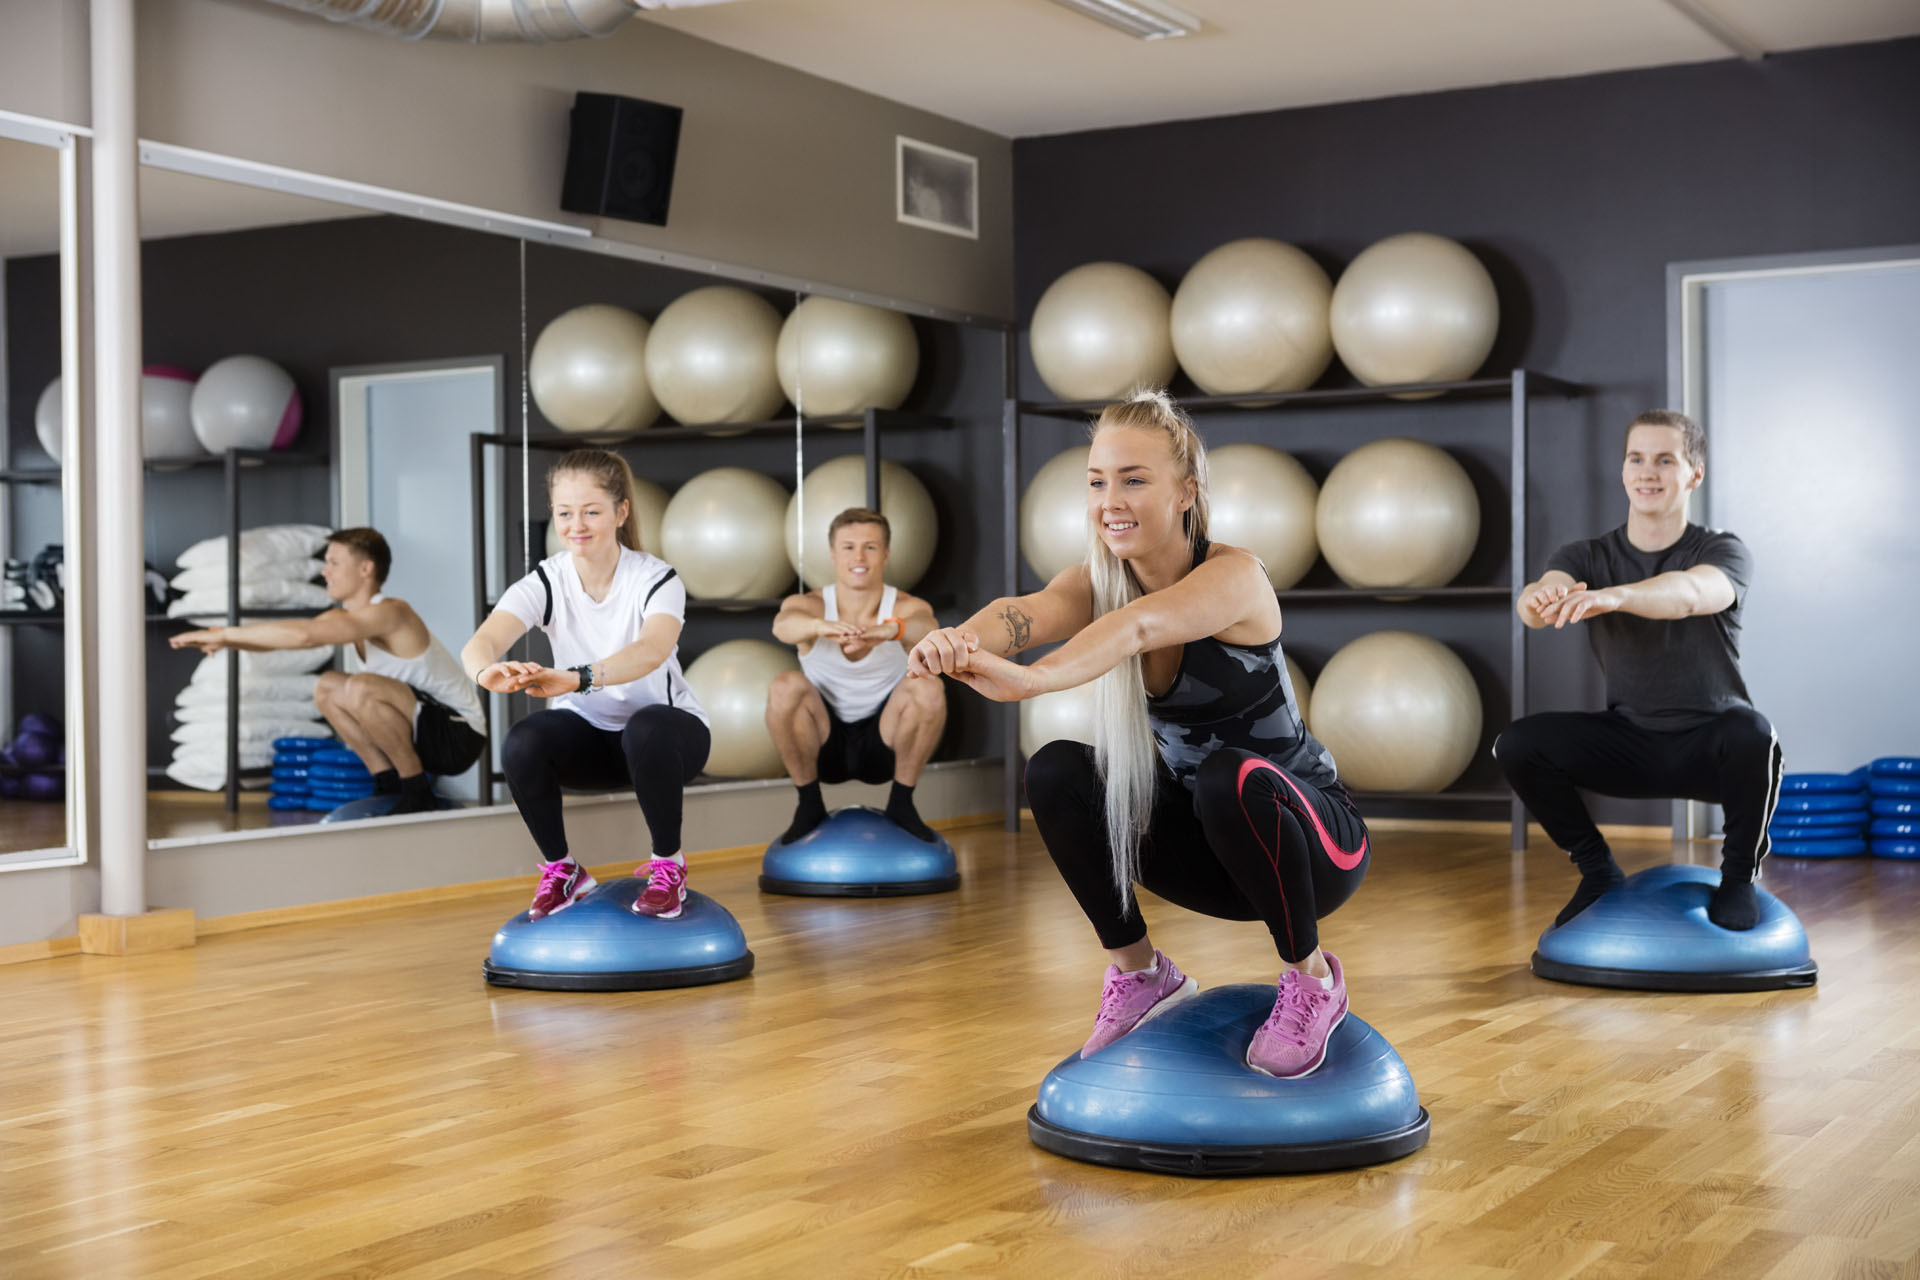 Male and female friends doing squatting exercise on bosu ball in gym